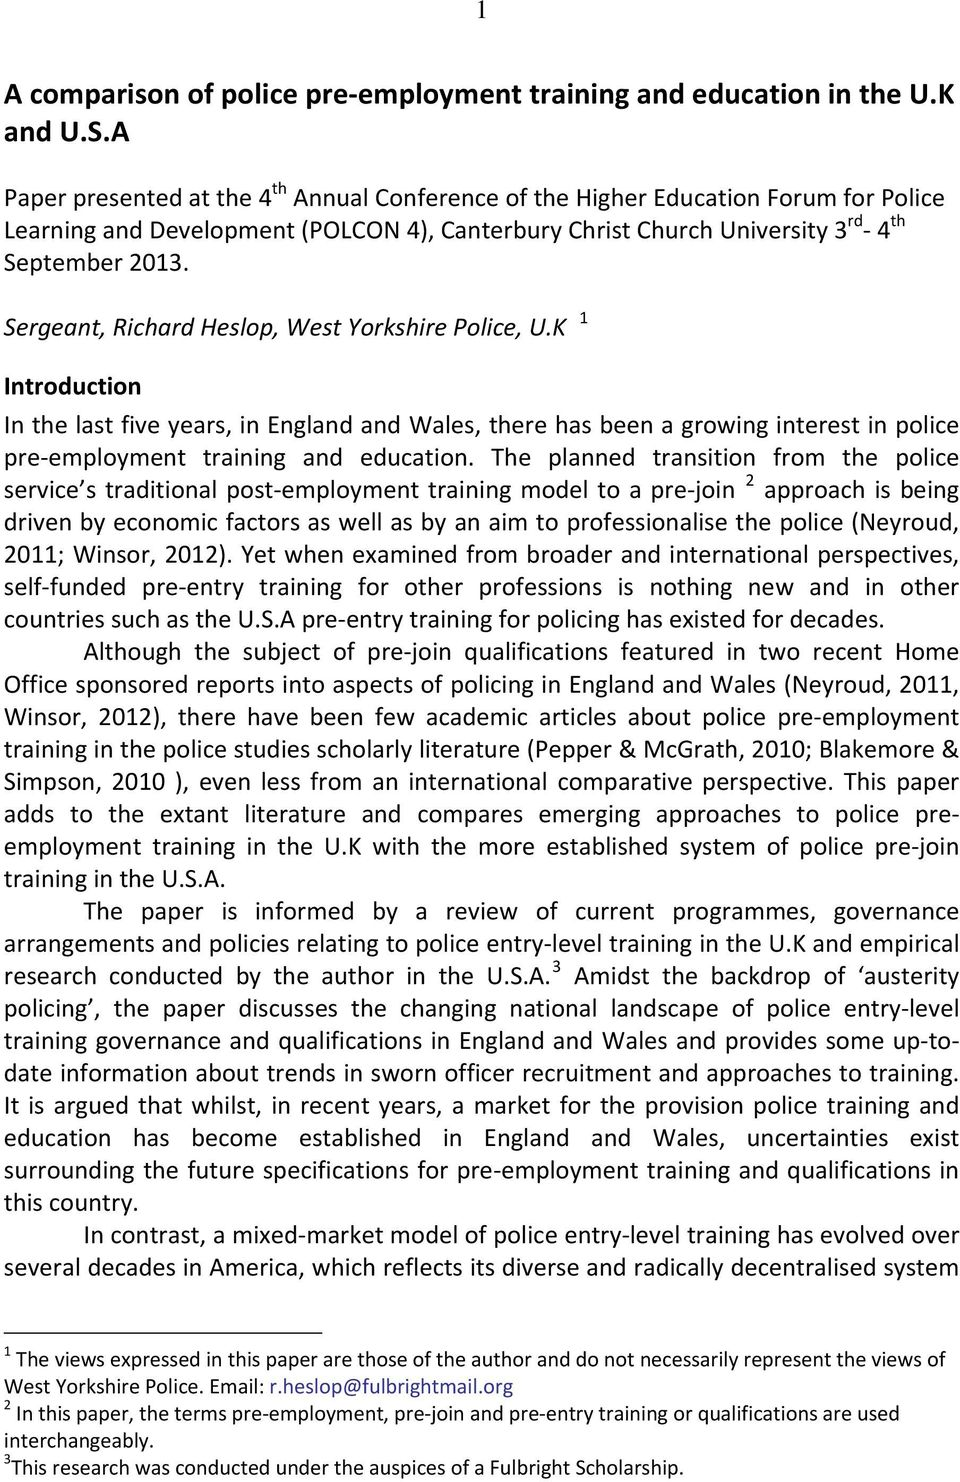 A comparison of police pre employment training and education in the